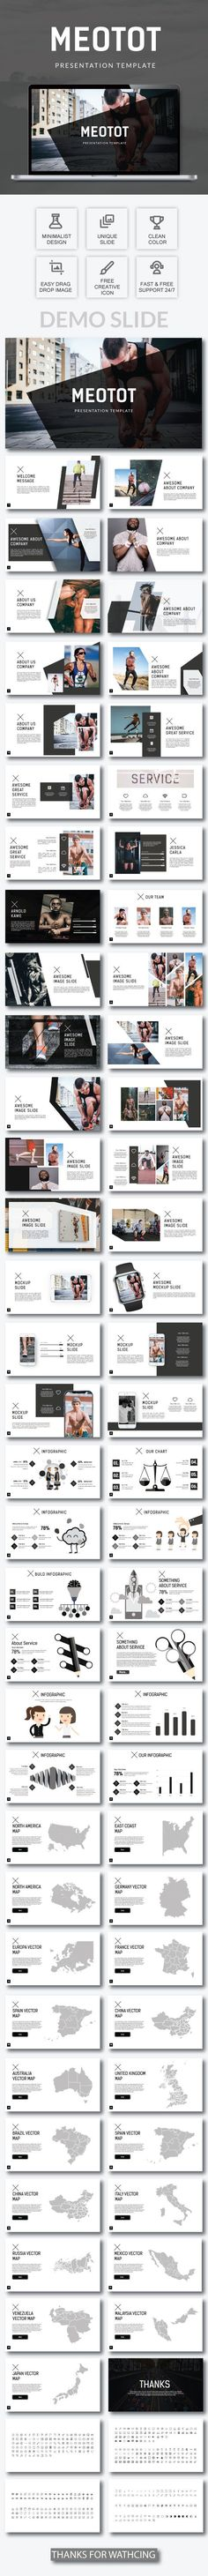 Metotot Business Powerpoint Template - PowerPoint Templates Presentation Templates